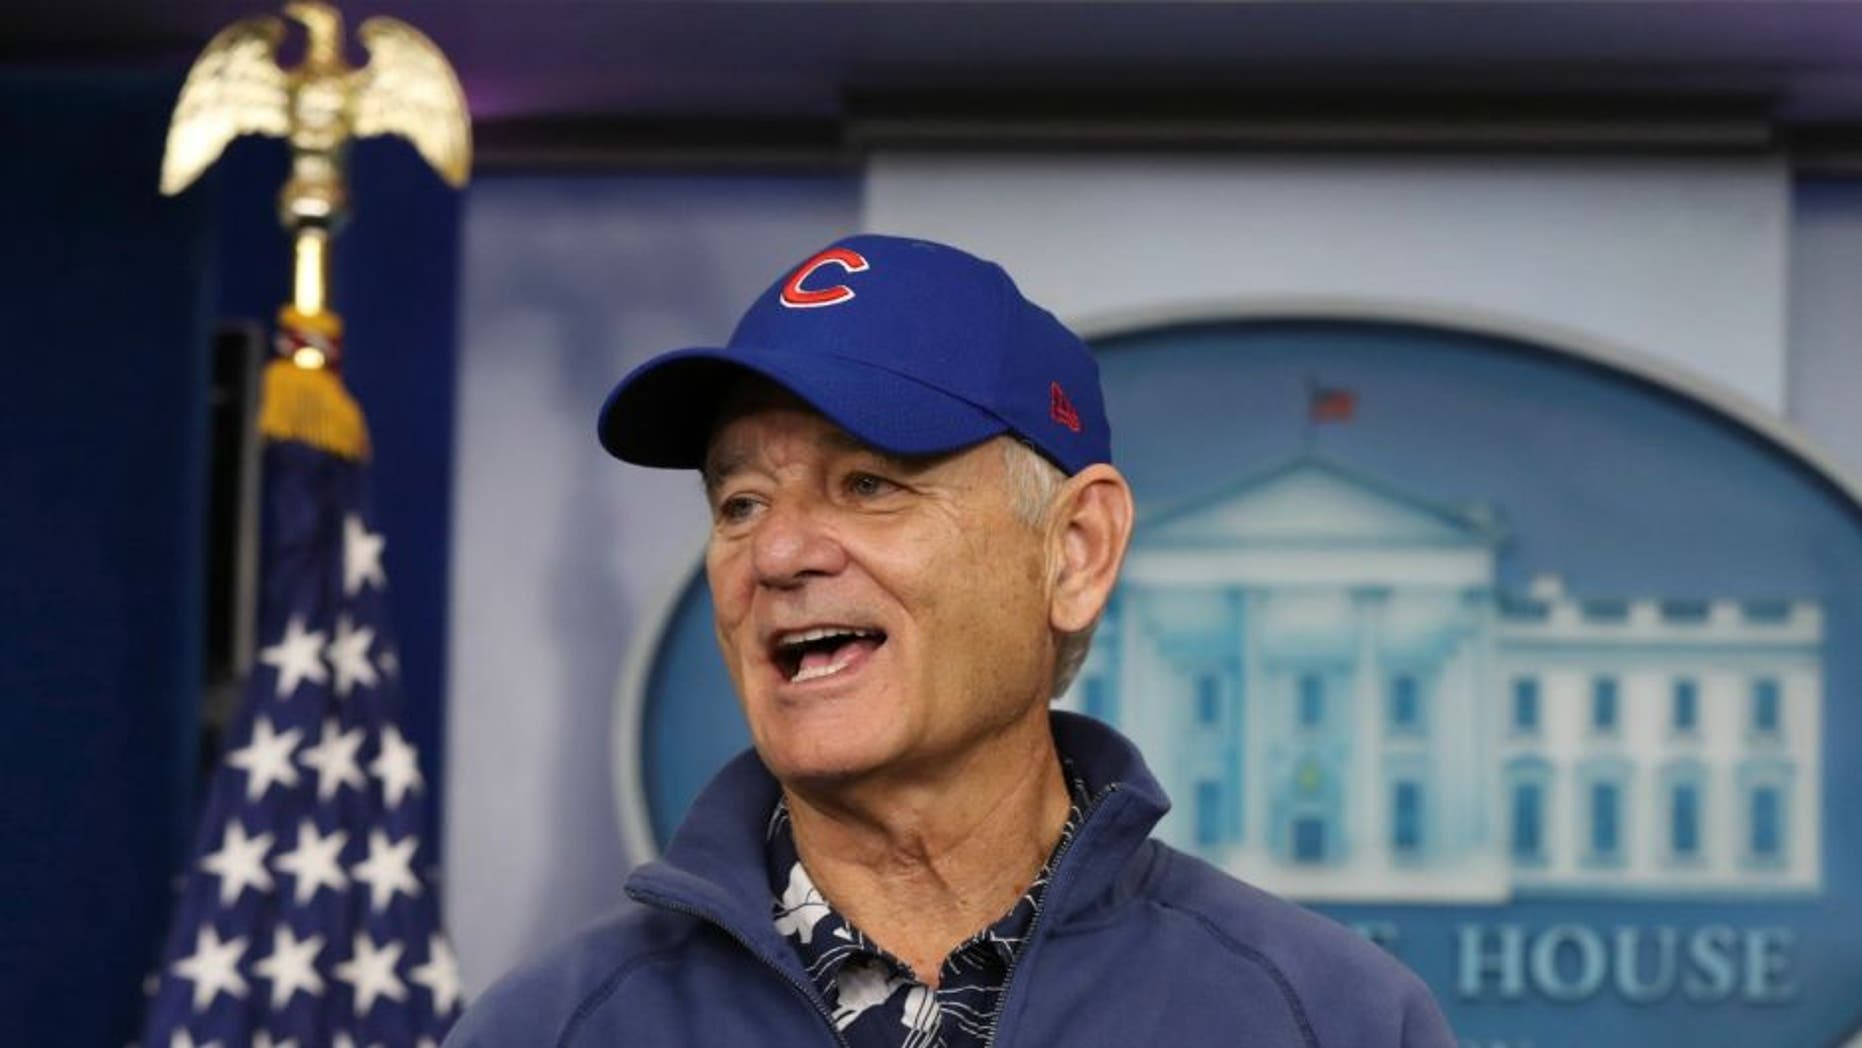 Actor Bill Murray was caught shoving a man while in the Sydney, Australia airport for apparently getting to close to his group while they made their way through the terminal. (AP Photo/Manuel Balce Ceneta)